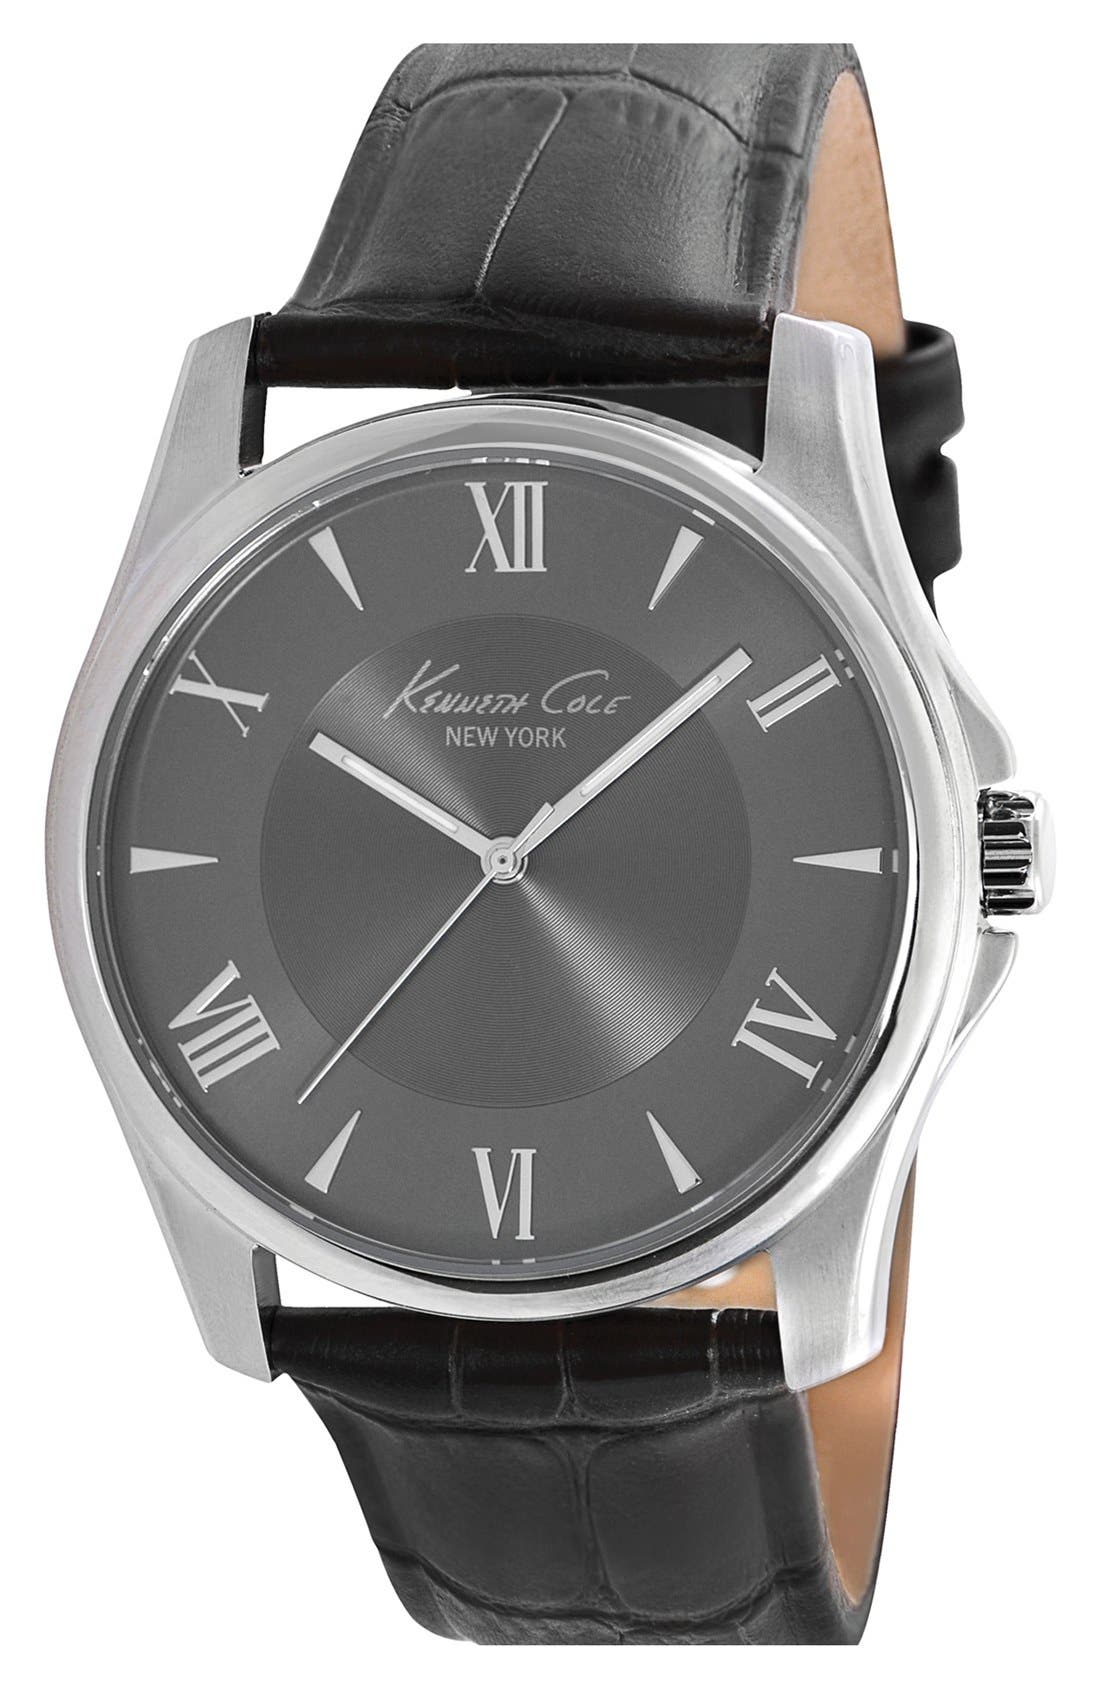 Main Image - Kenneth Cole New York Roman Numeral Watch, 44mm